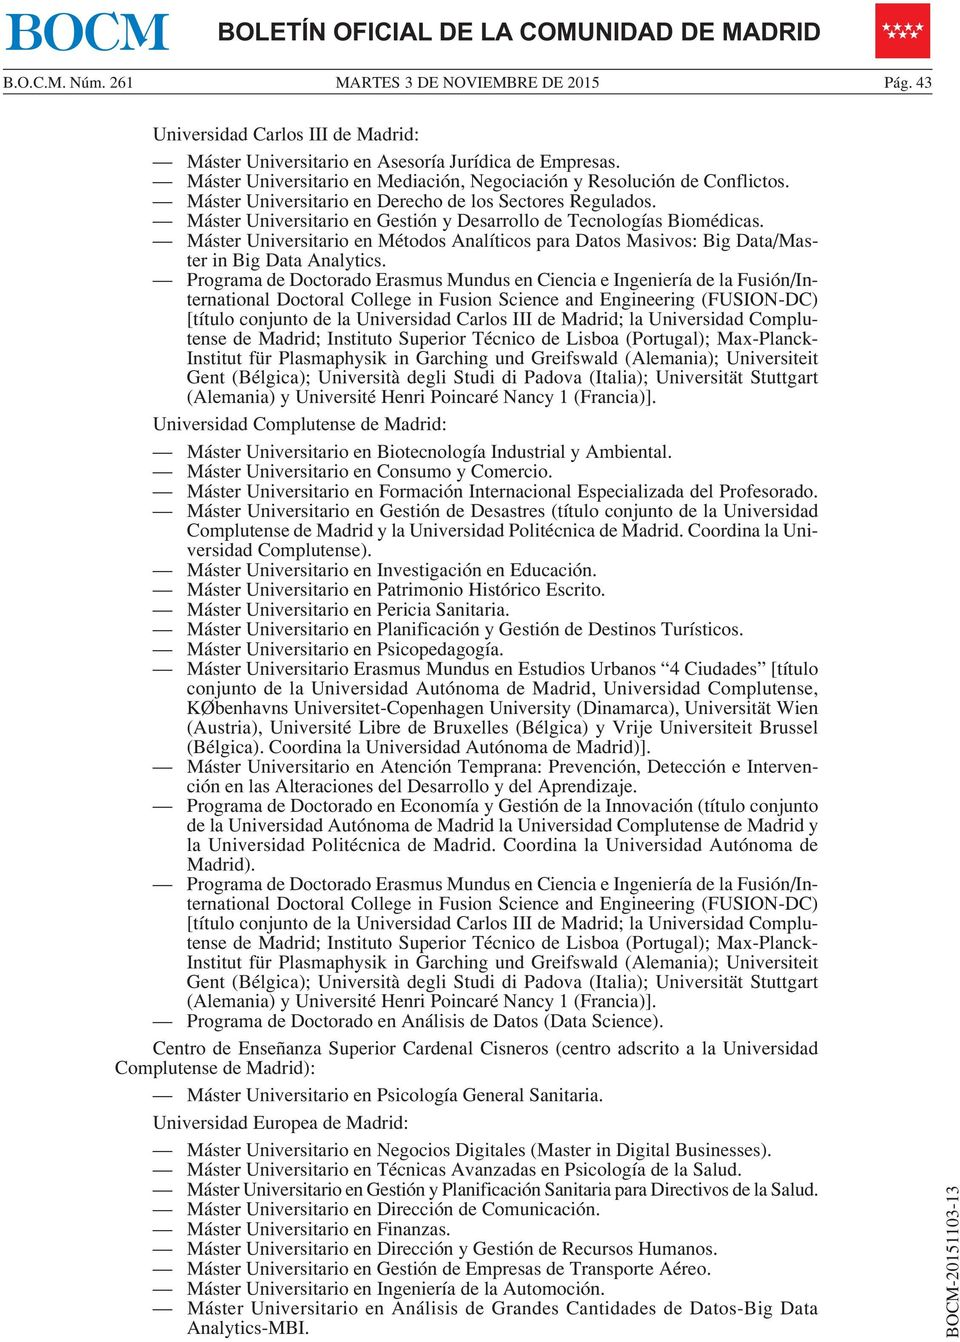 Máster Universitario en Gestión y Desarrollo de Tecnologías Biomédicas. Máster Universitario en Métodos Analíticos para Datos Masivos: Big Data/Master in Big Data Analytics.